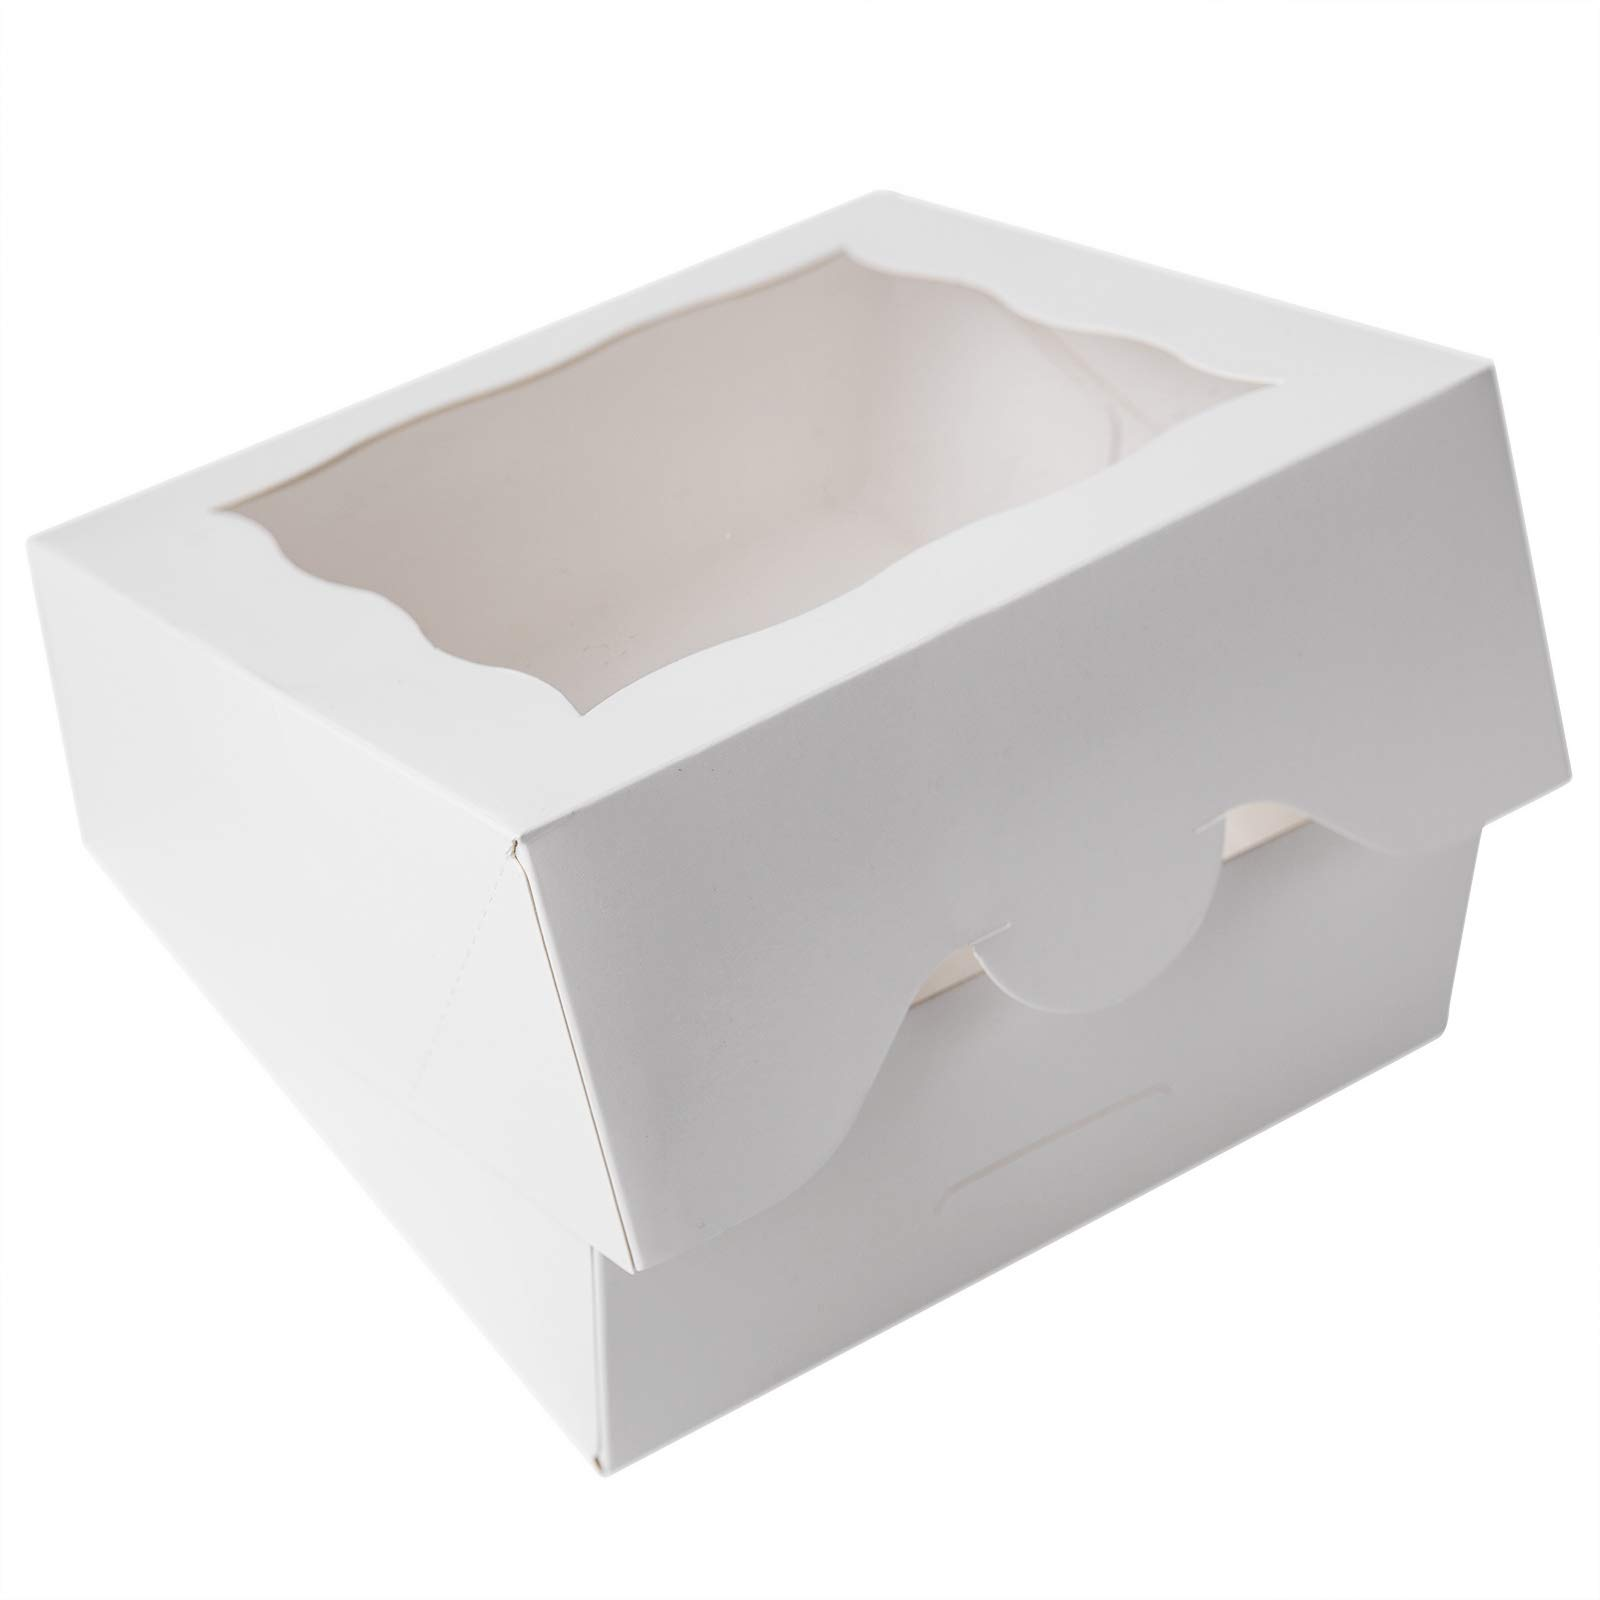 ONE MORE 6''White Bakery Boxes with pvc Window for Pie and Cookies Boxes Small Natural Craft Paper Box 6x6x2.5inch,12 of Pack by ONE MORE (Image #8)